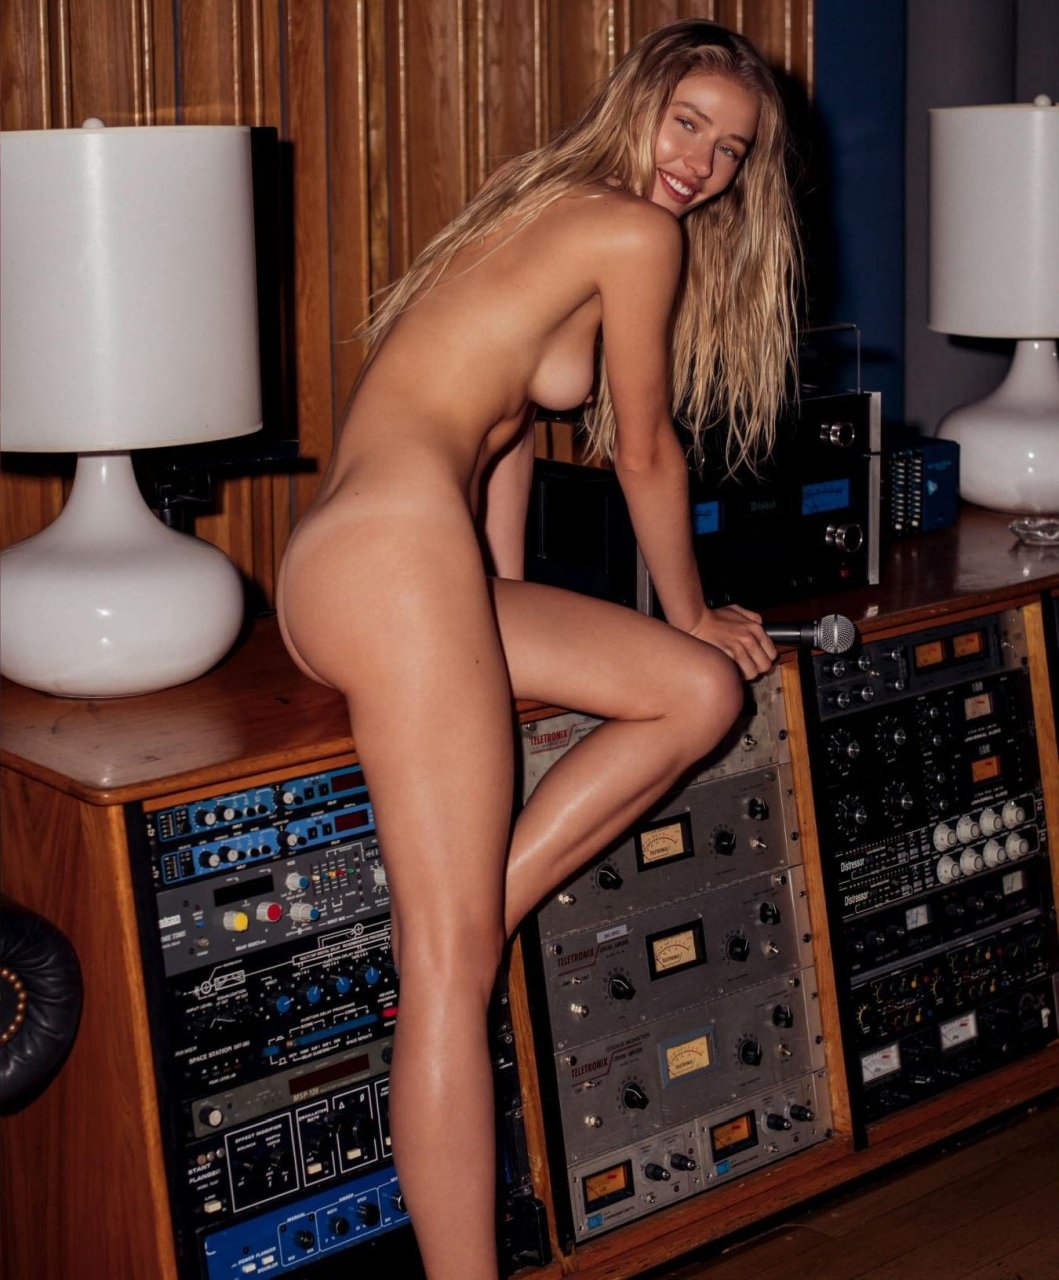 Half Nude Images